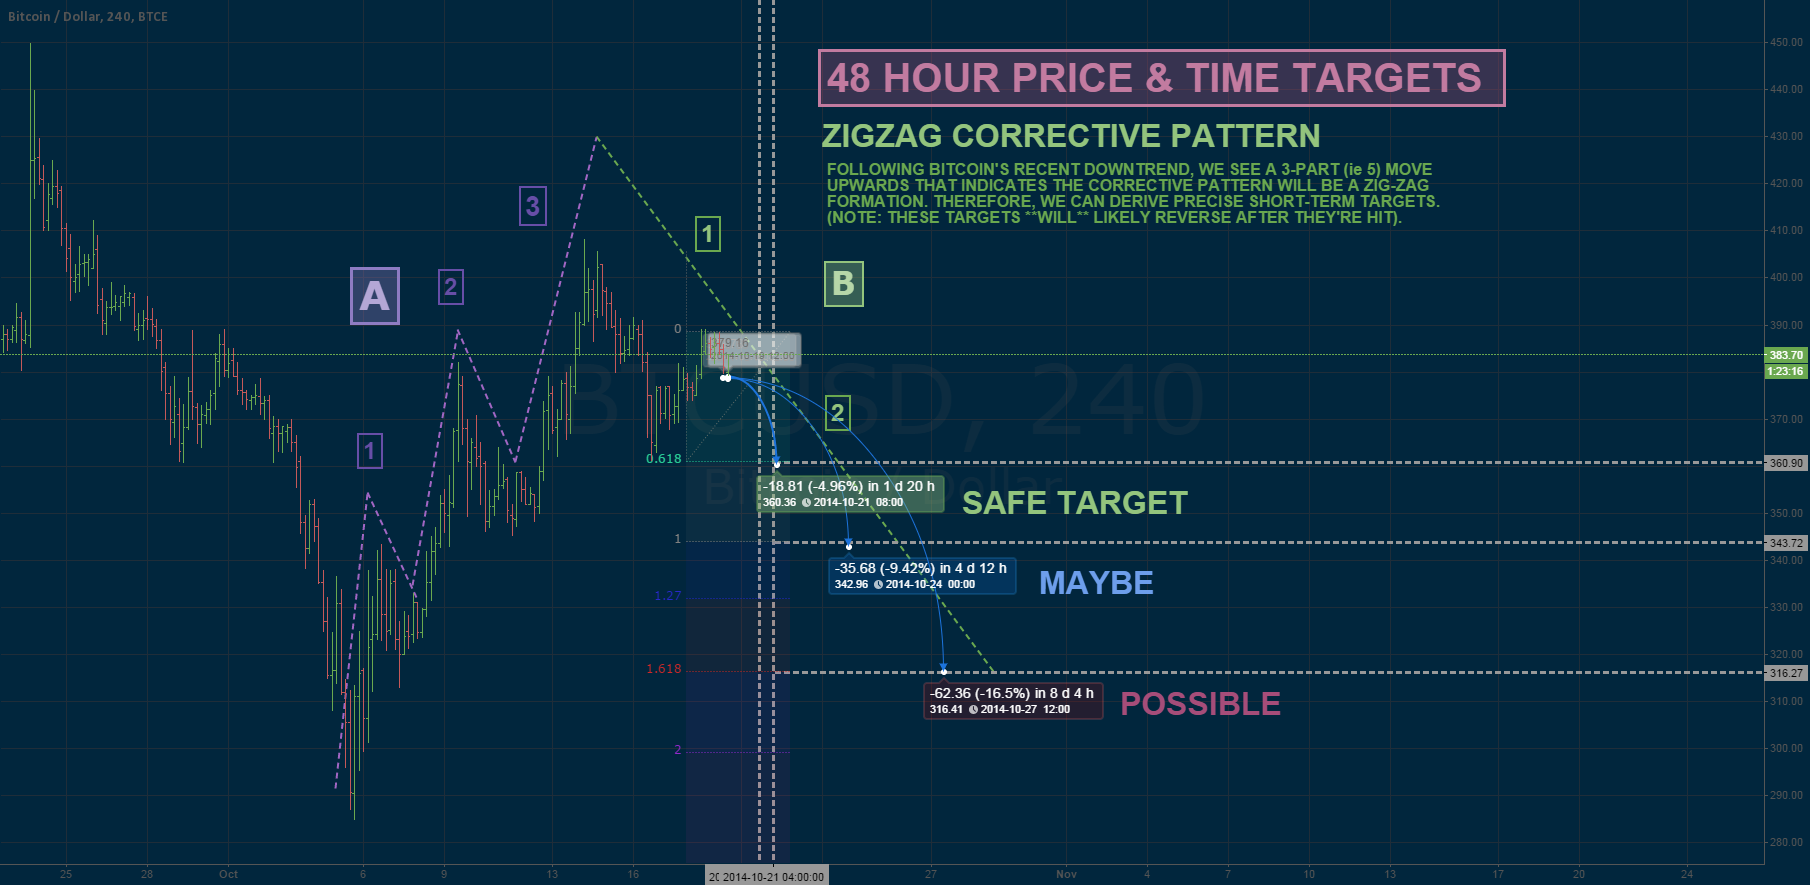 BTC 48HR Price & Time Targets